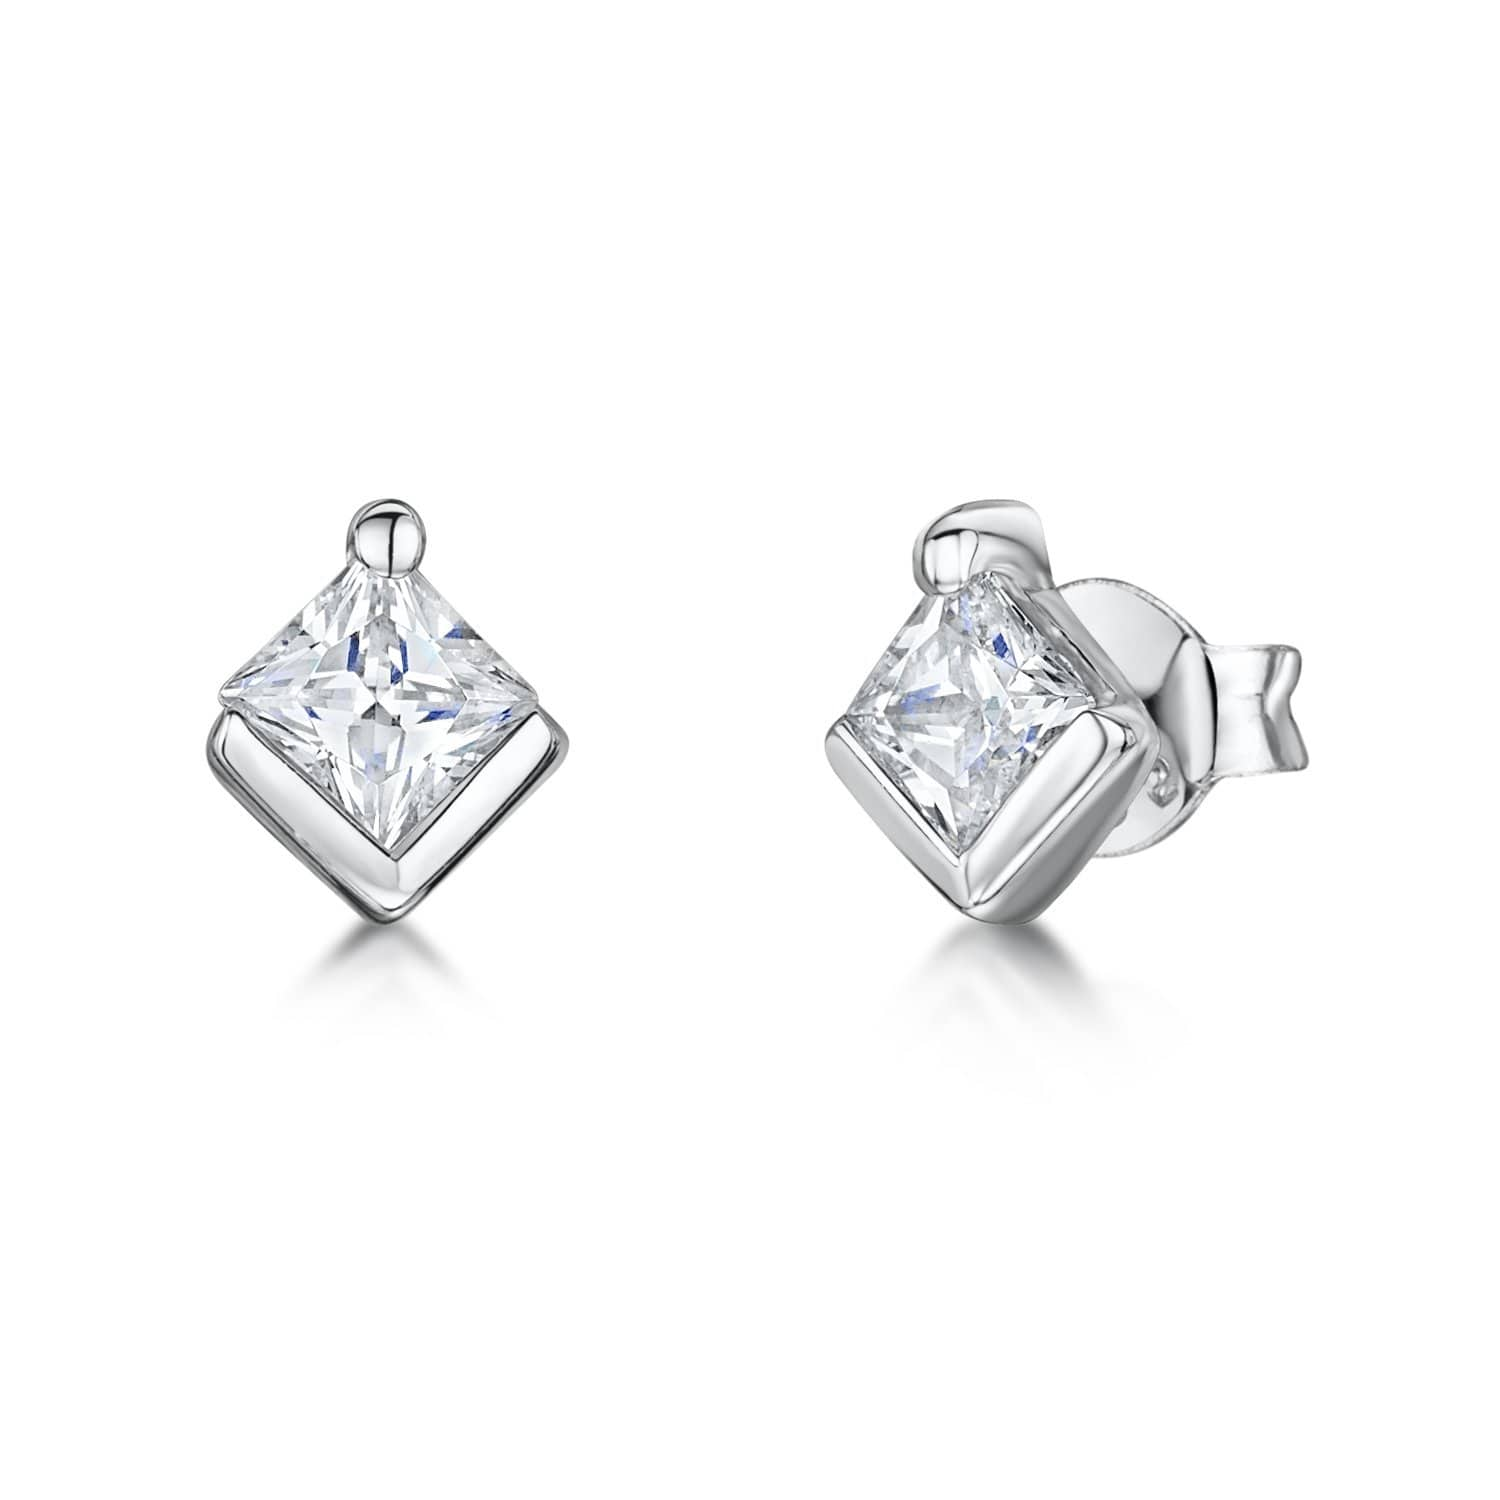 Sterling Silver Square Stud EarringsEarrings - JOOLS By Jenny Brown